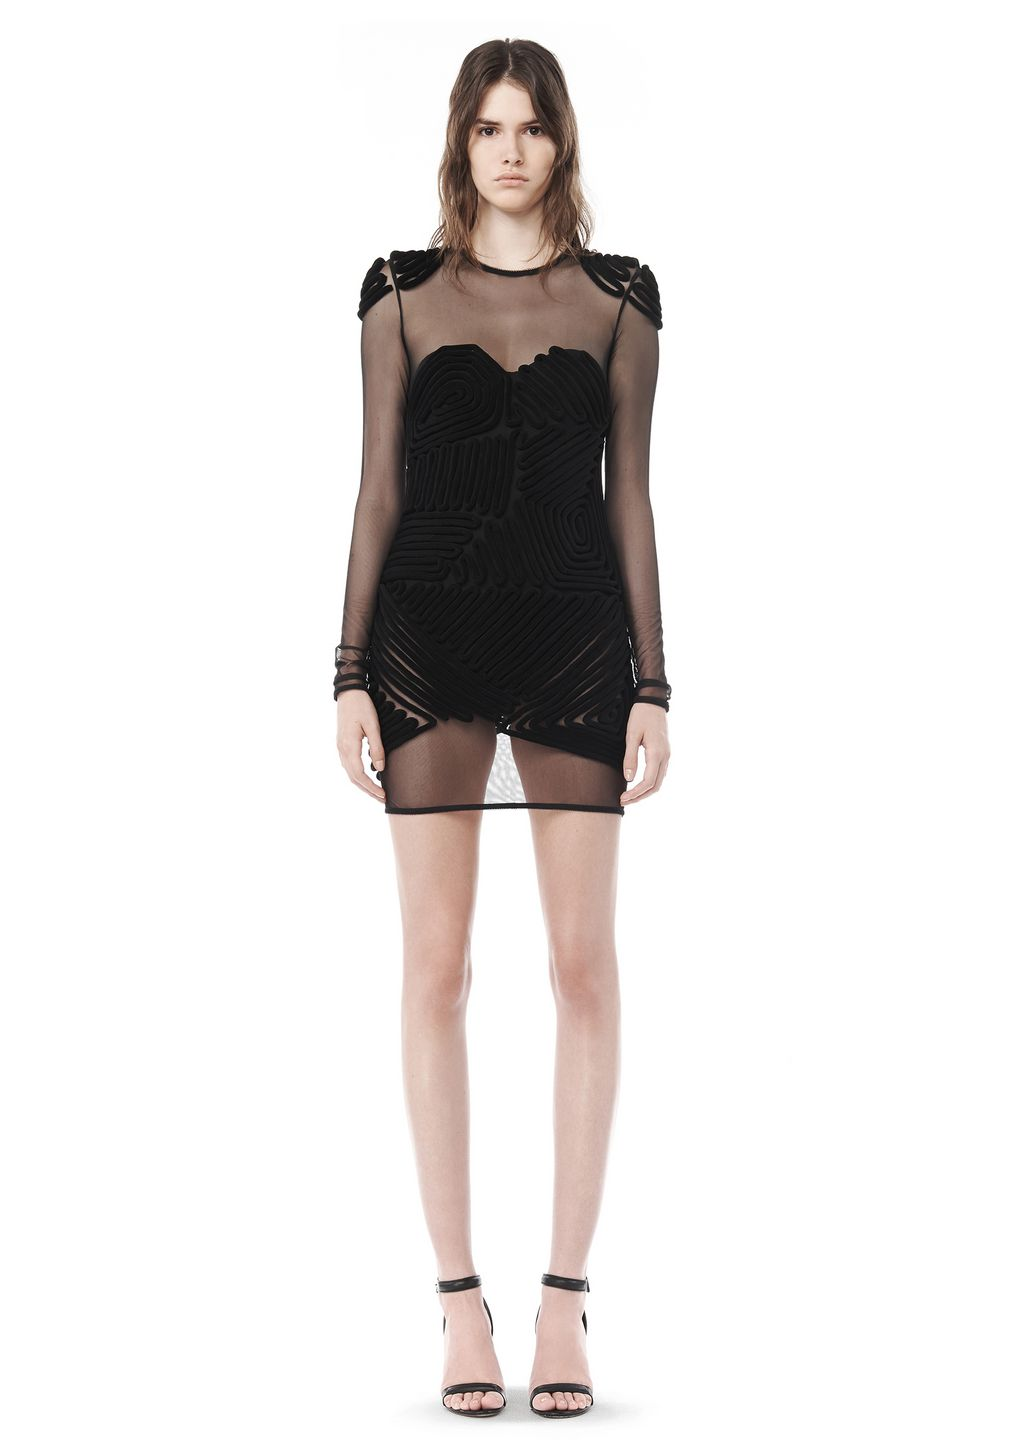 alexander wang spring mesh dress with graphic detail